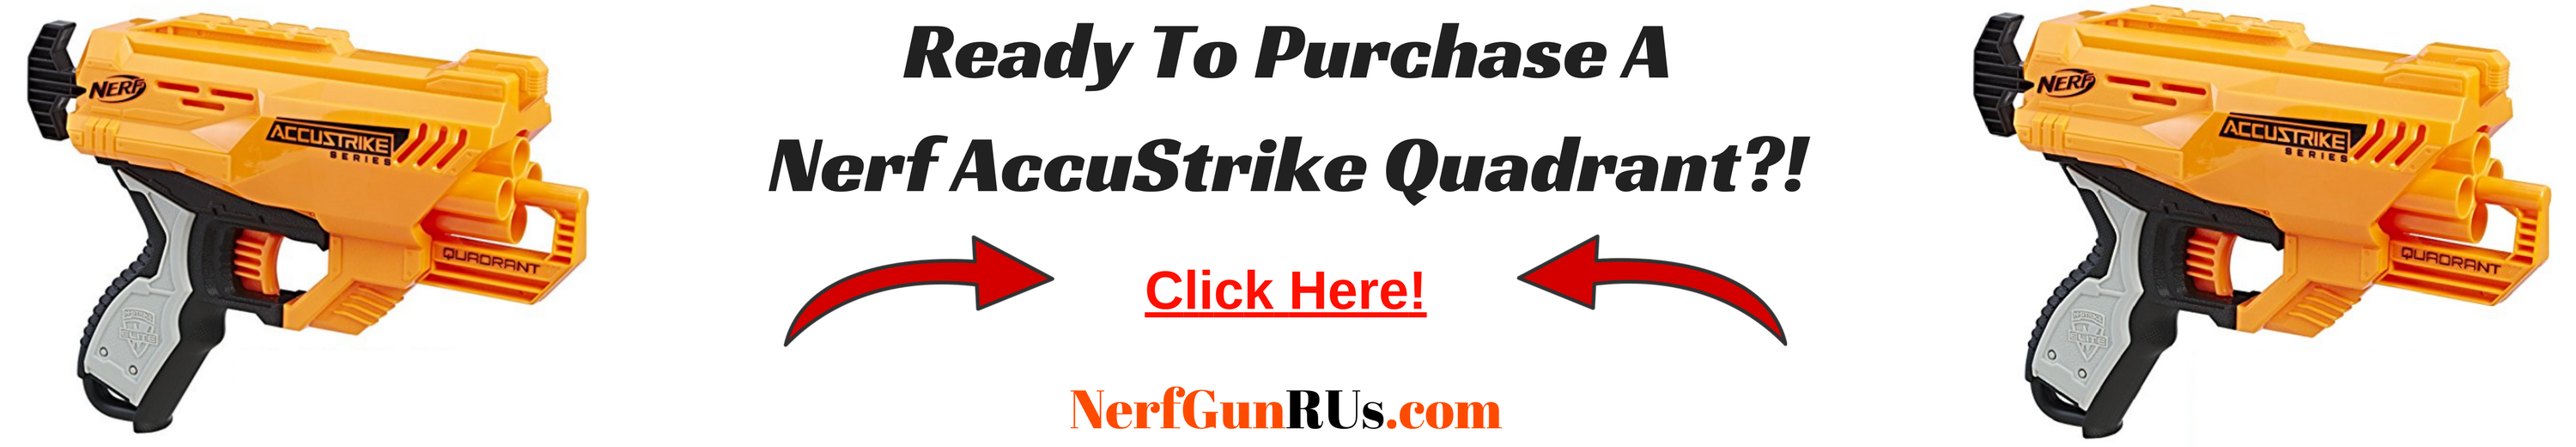 Ready To Purchase A Nerf AccuStrike Quadrant